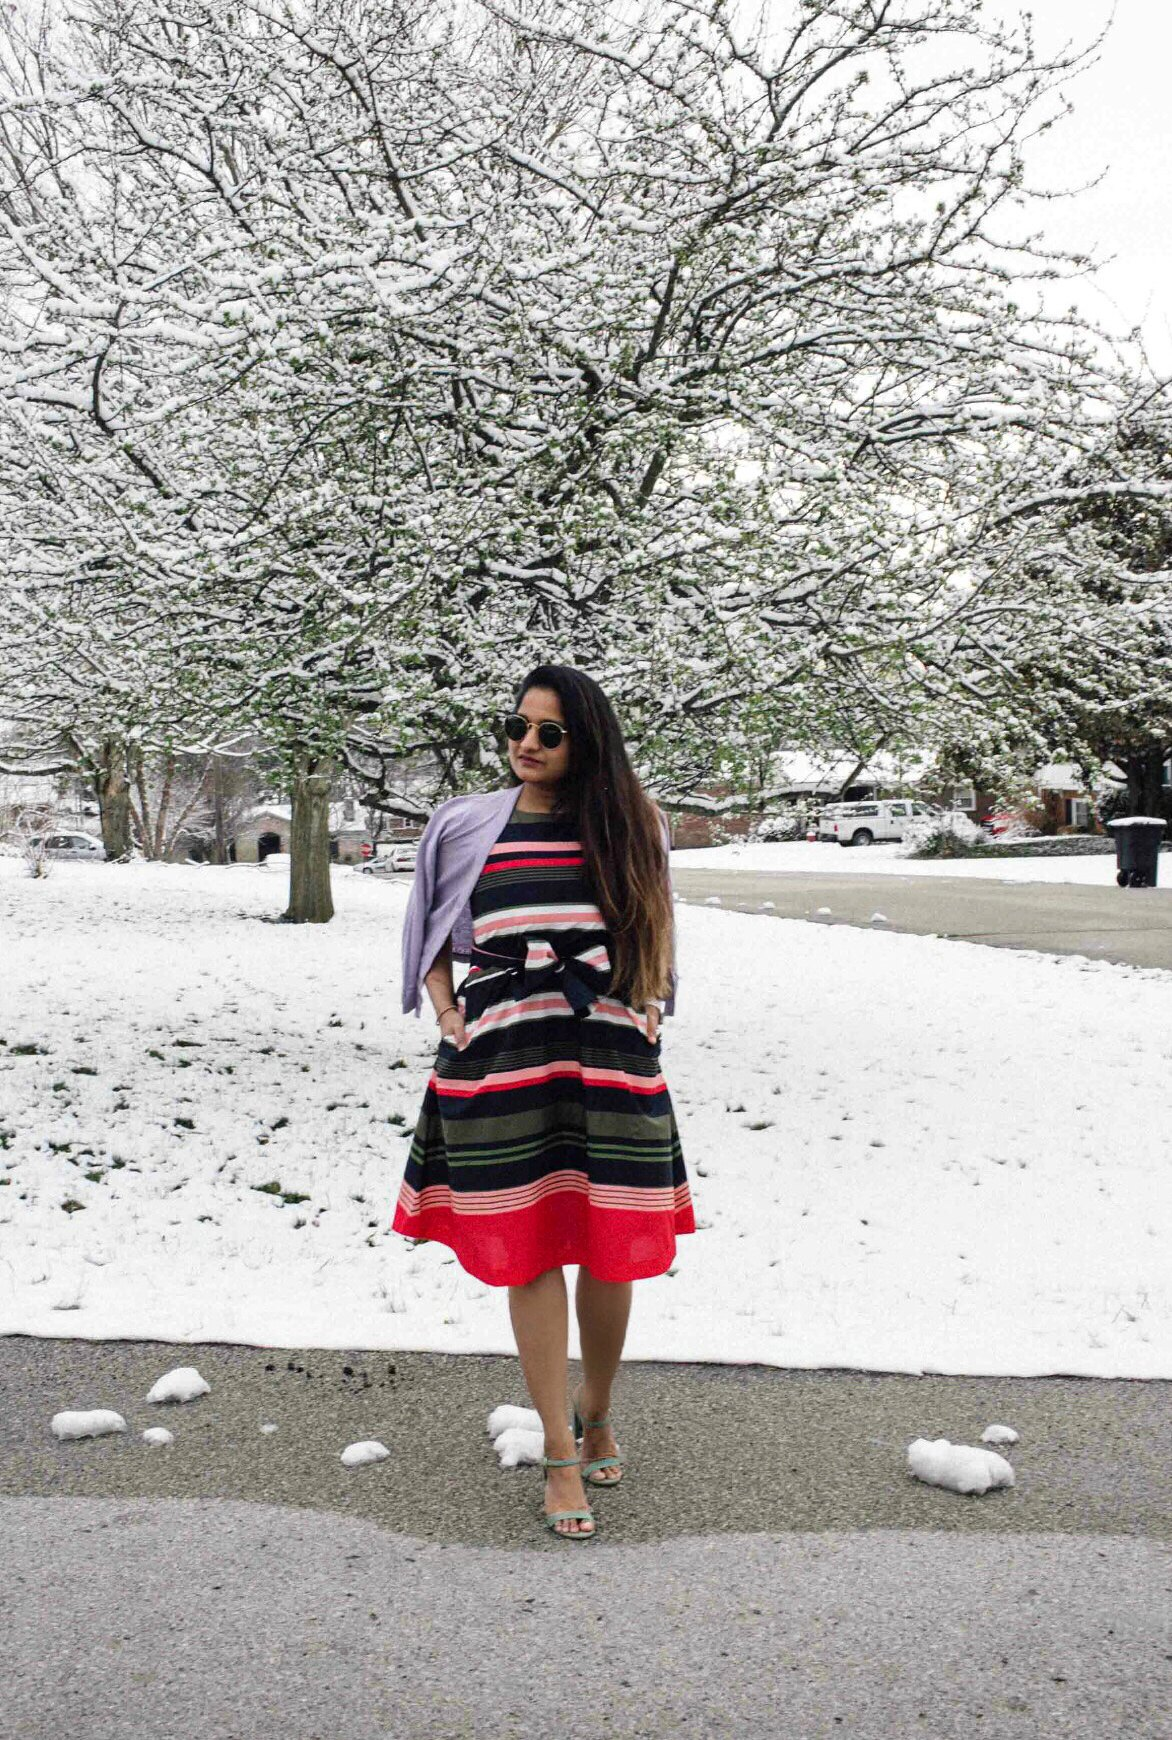 Lifestyle Blog Dreaming Loud sharing Best Tanger Outlet Spring workwear pieces| Tanger Outlet Spring Work Outfits Haul featured by popular Ohio modest fashion blogger, Dreaming Loud